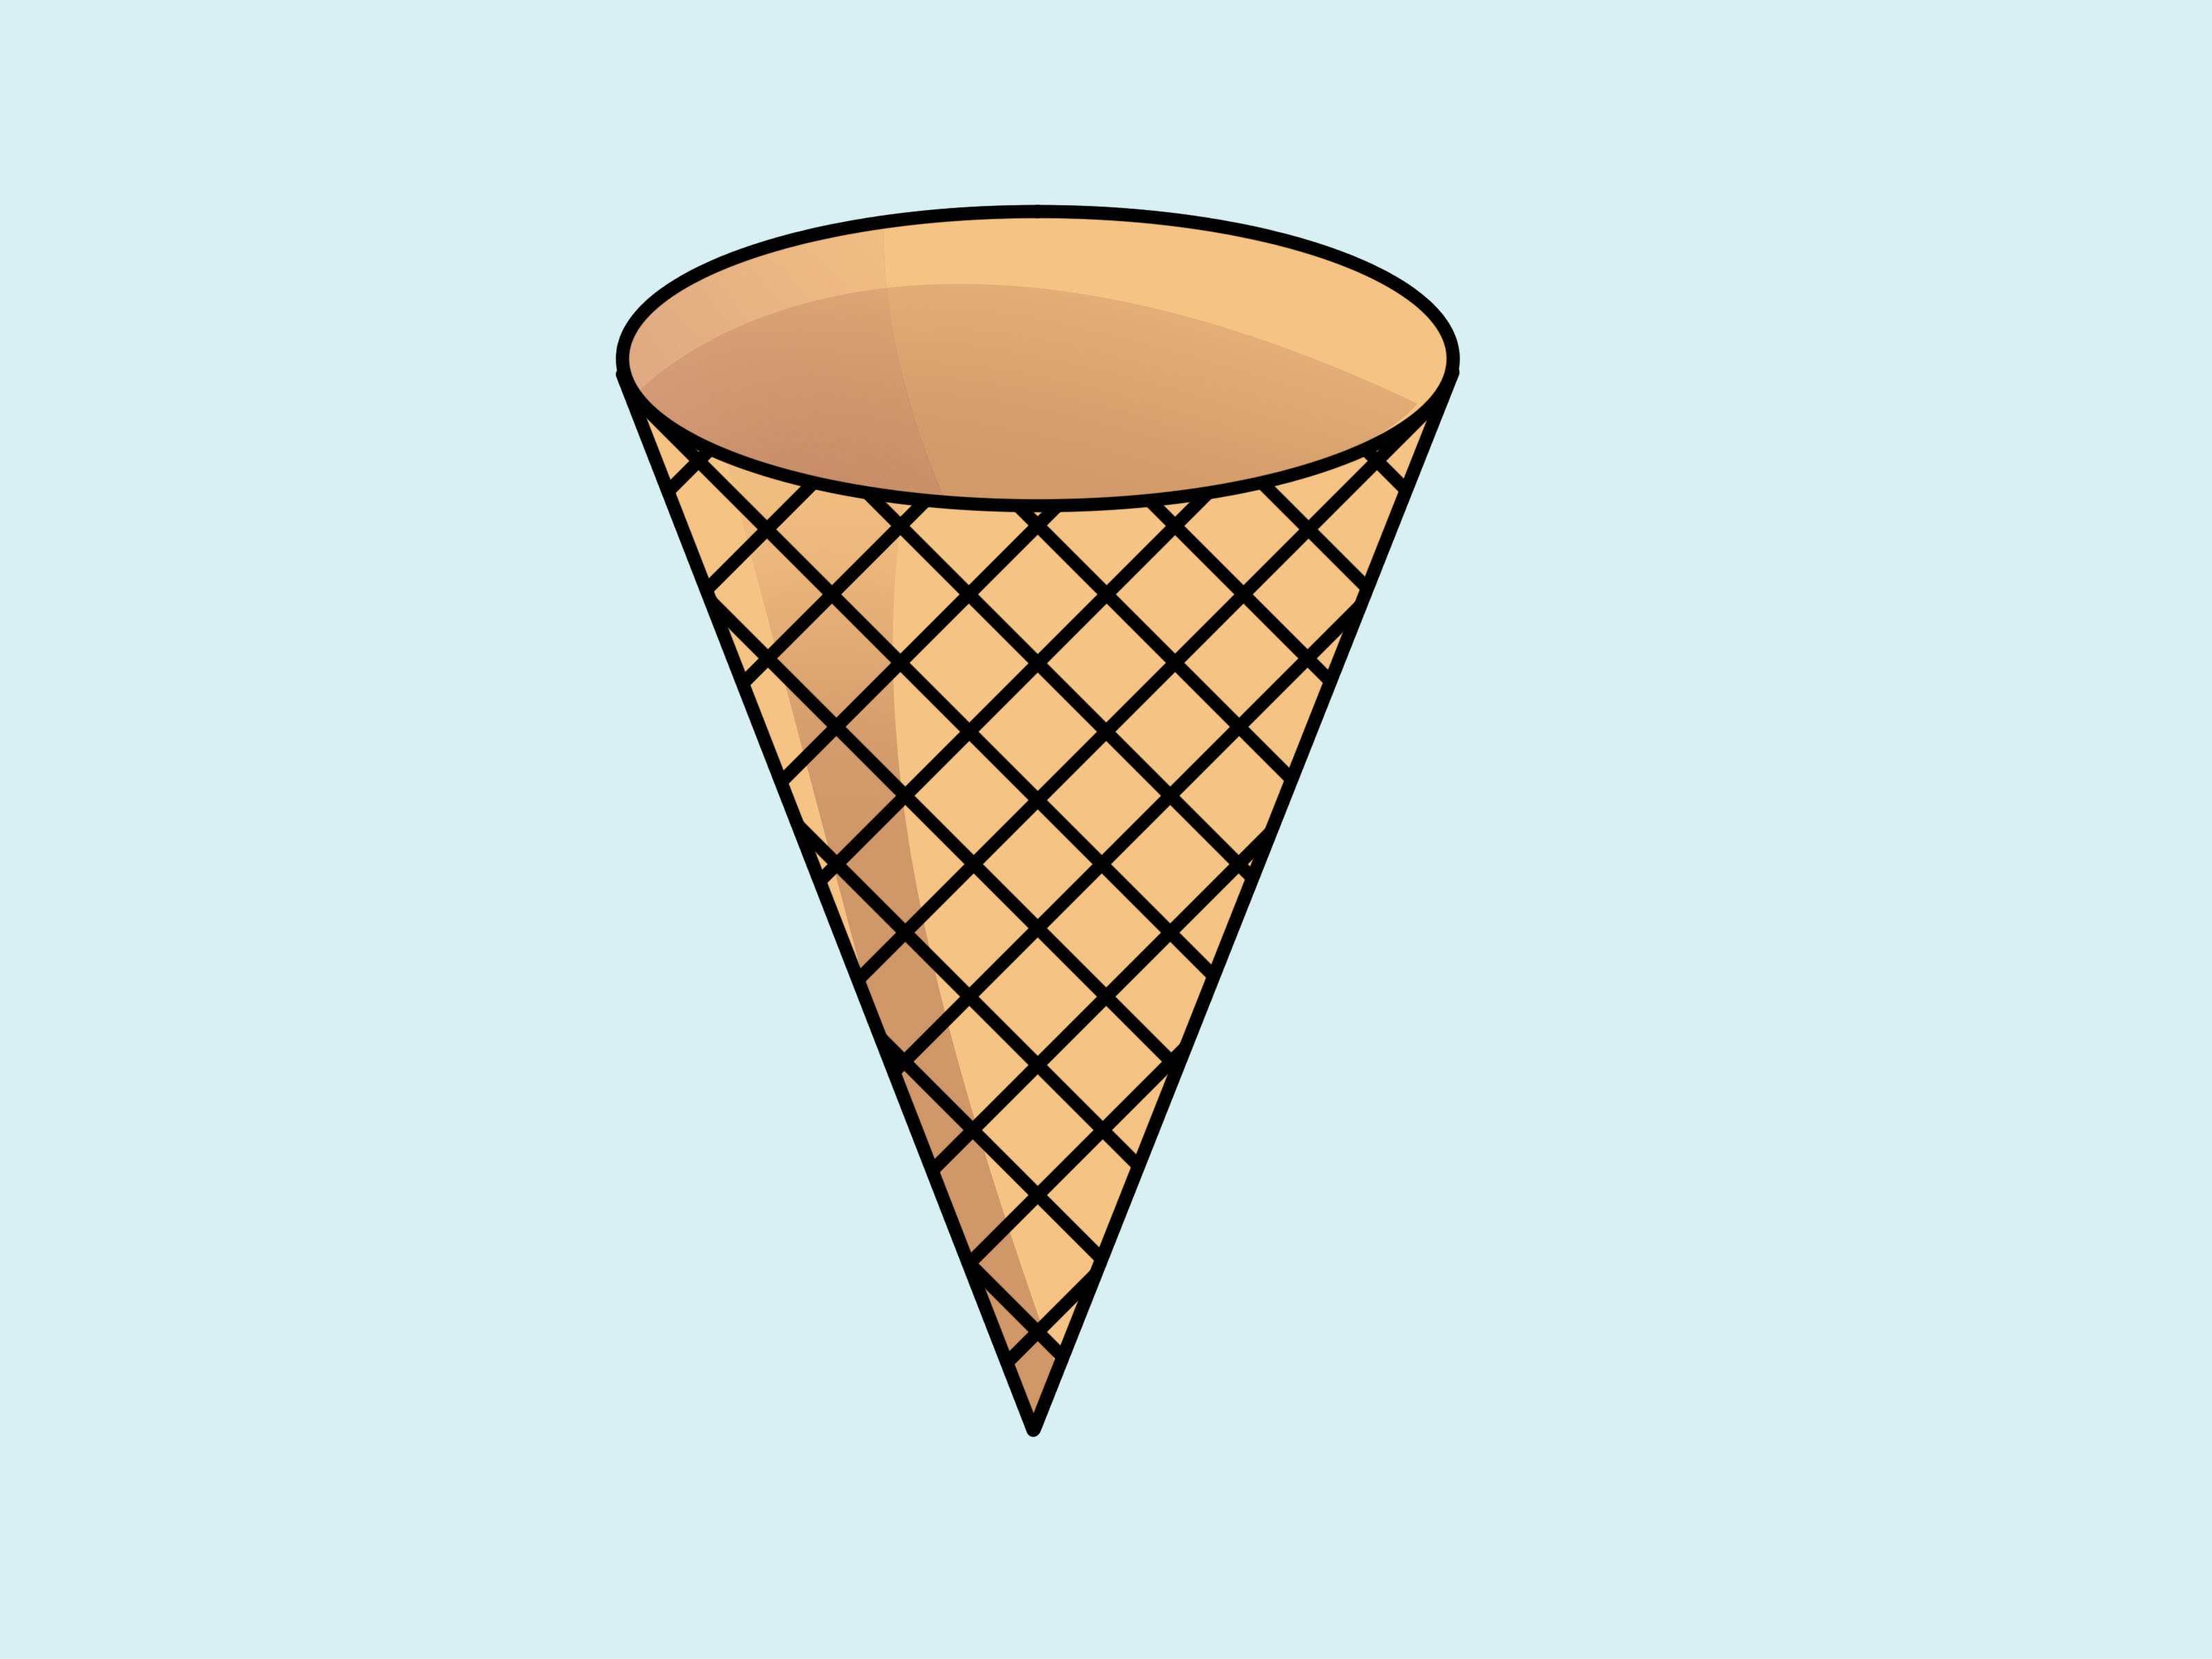 Drawn waffle cone Clip Cute Of Images For